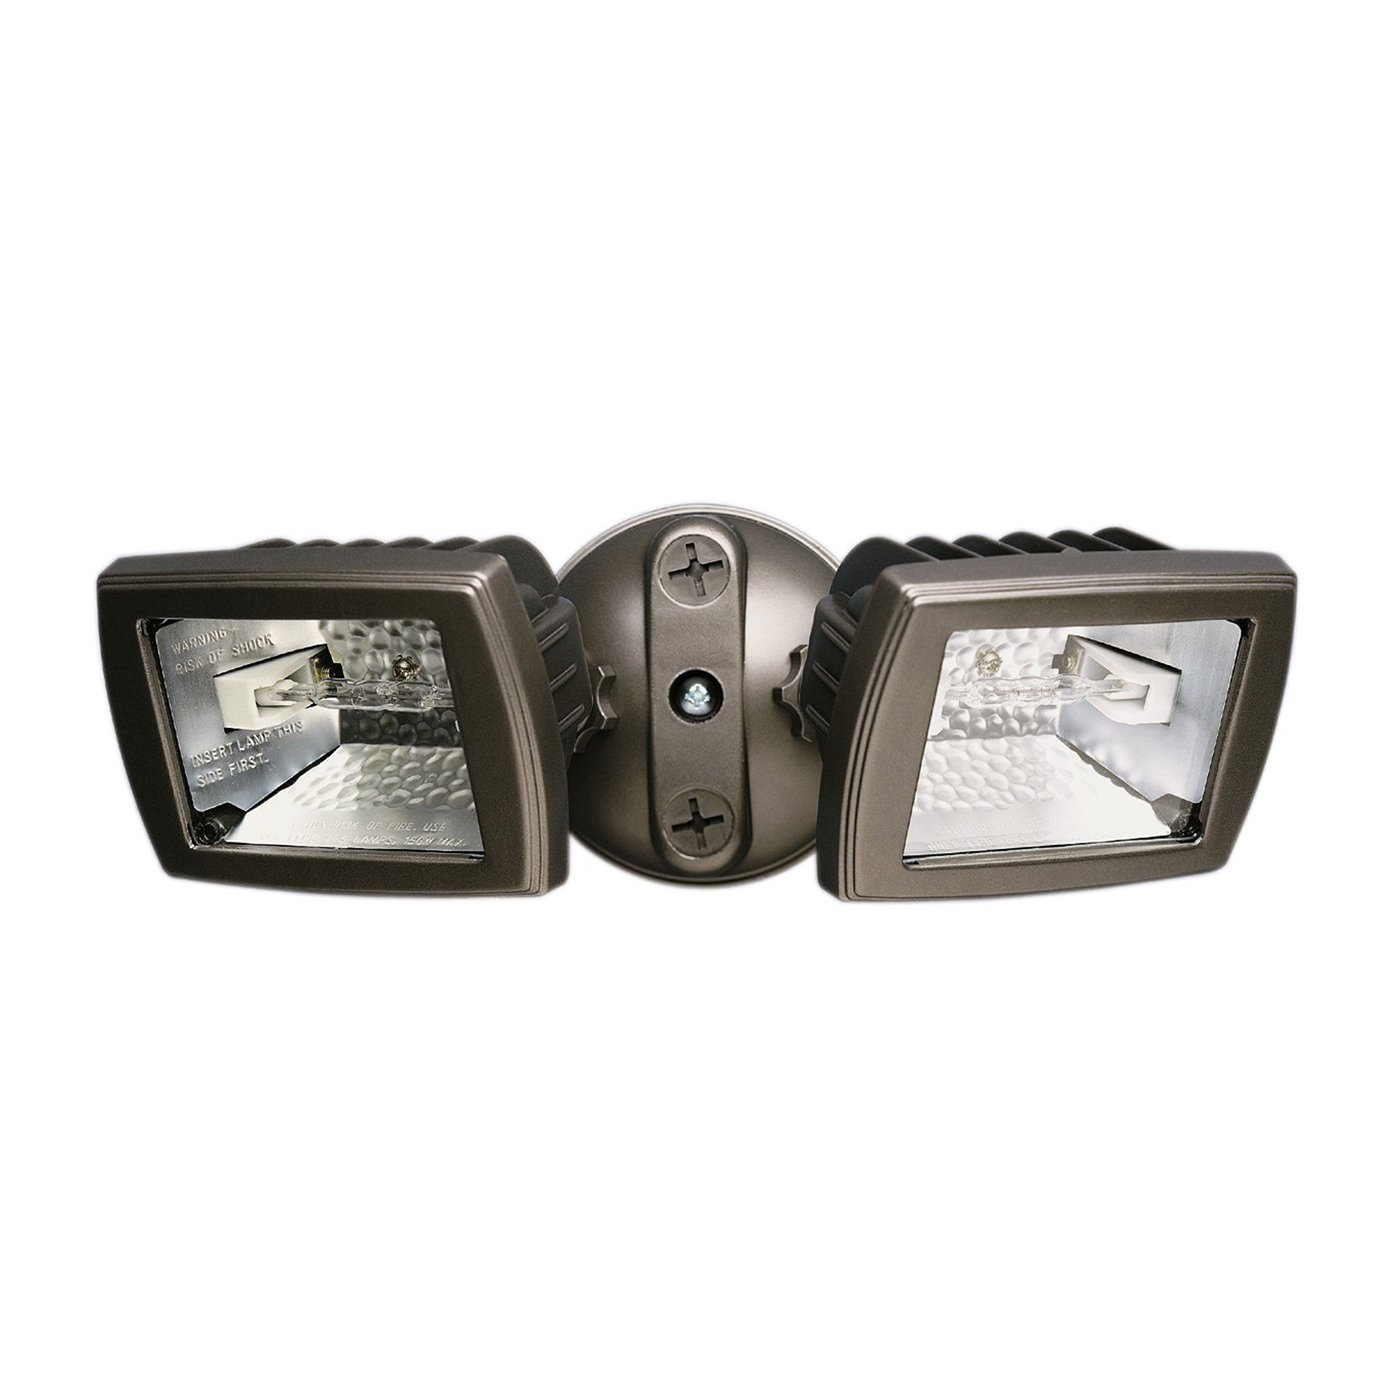 halogen outdoor flood lights photo - 10